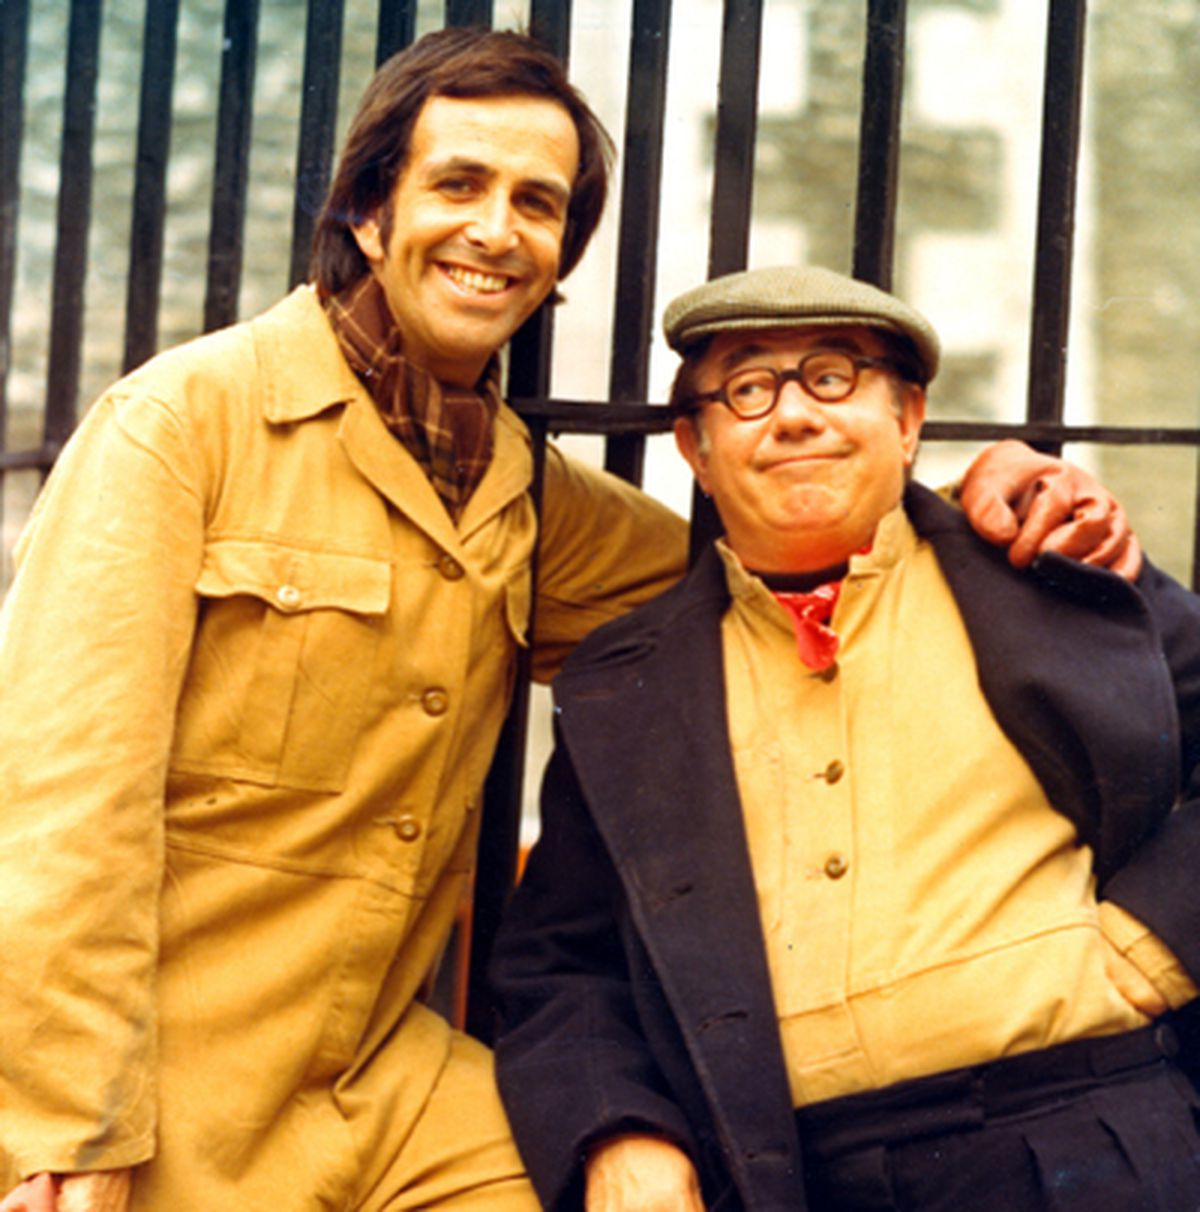 Don Maclean and Peter Glaze formed a popular comedy double act in the 1970s